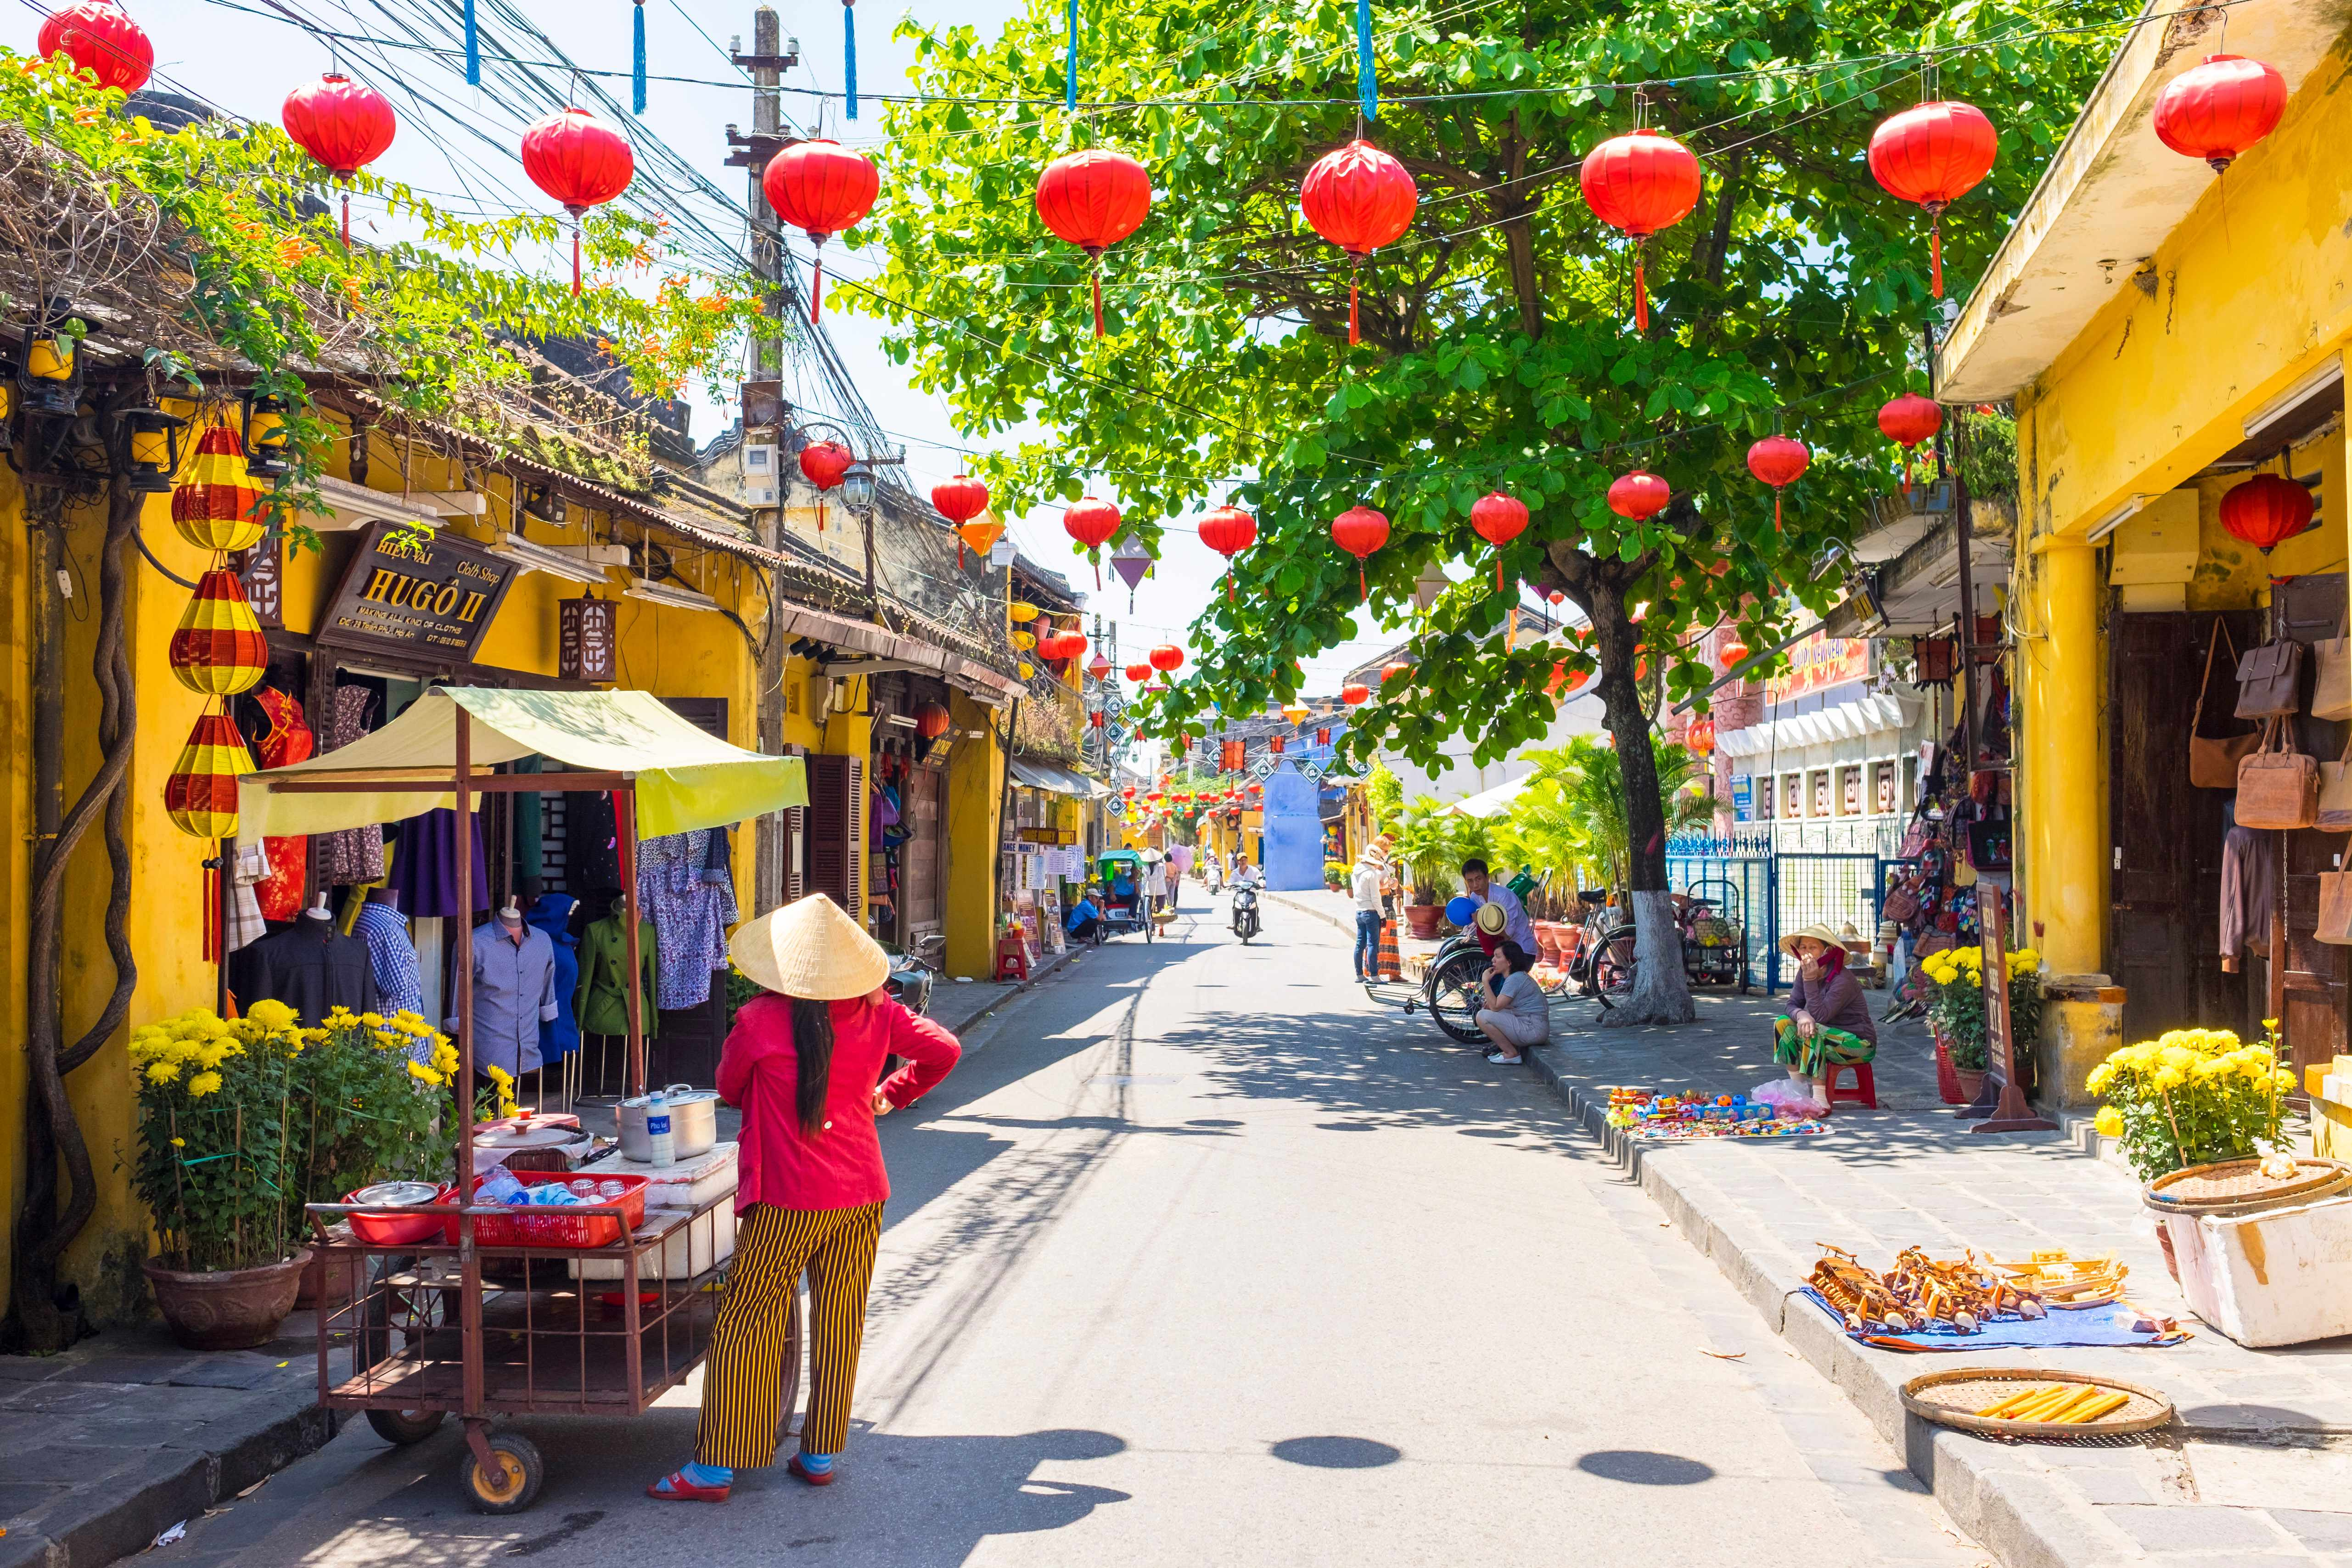 A Vietnamese woman with a food cart on the street in Hoi An Ancient Town, Hoi An, Quang Nam Province, Vietnam